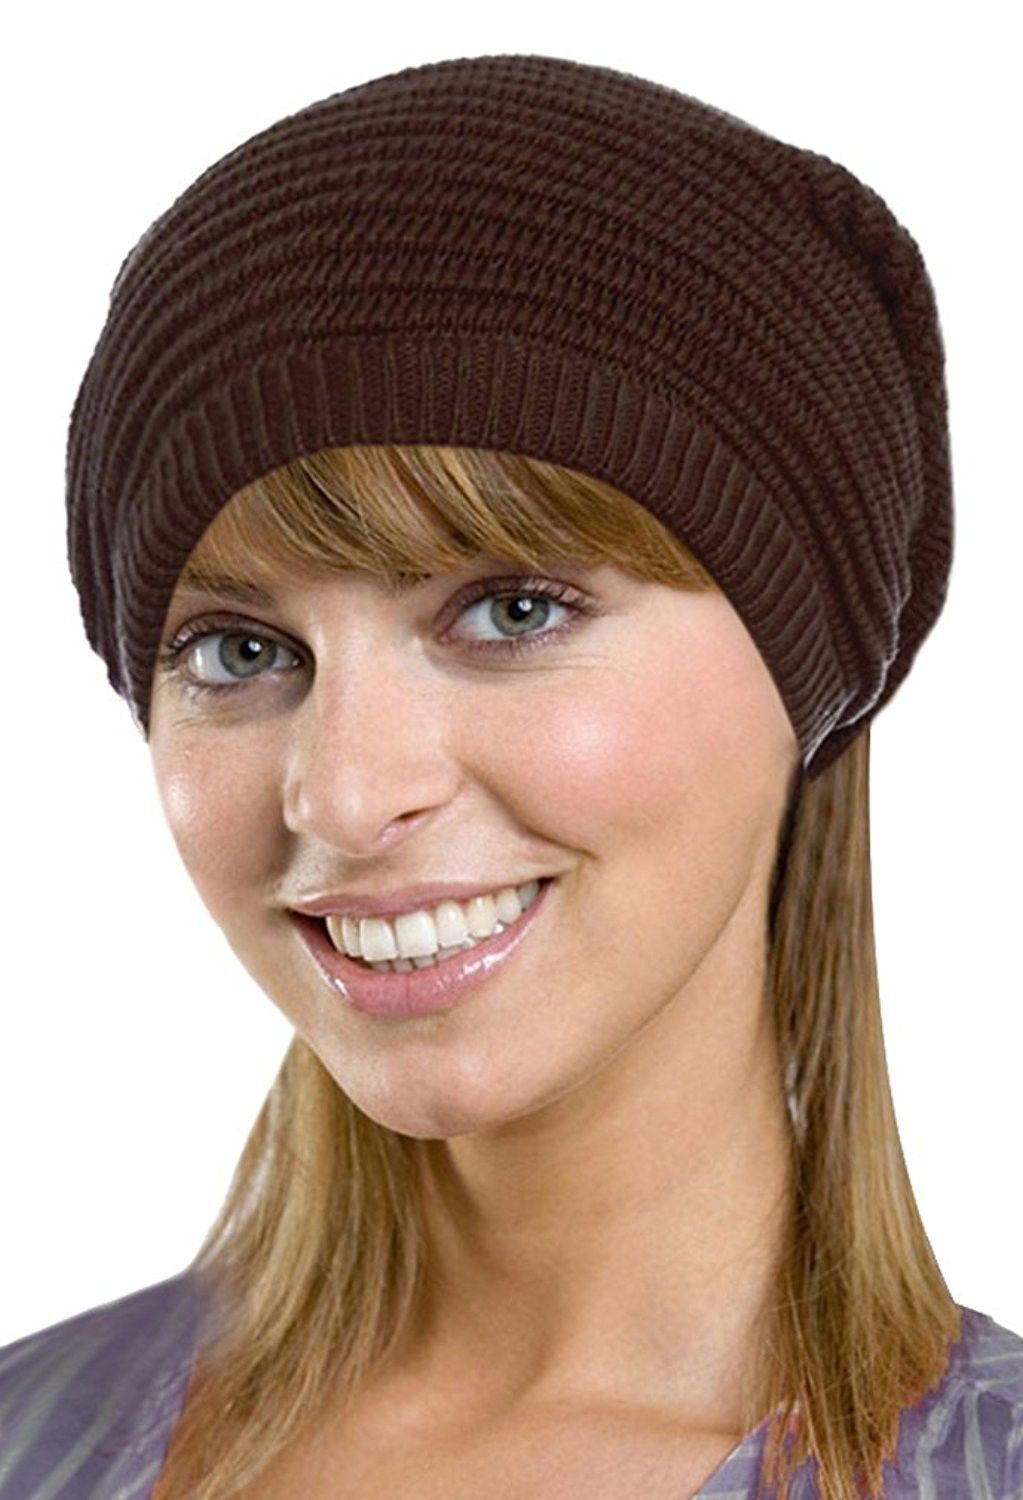 ea5aba495c0 Men   Women s Retro Oversized Slouchy Winter Knit Beanie Hat - Solid Brown  - CR186WQL04N - Hats   Caps